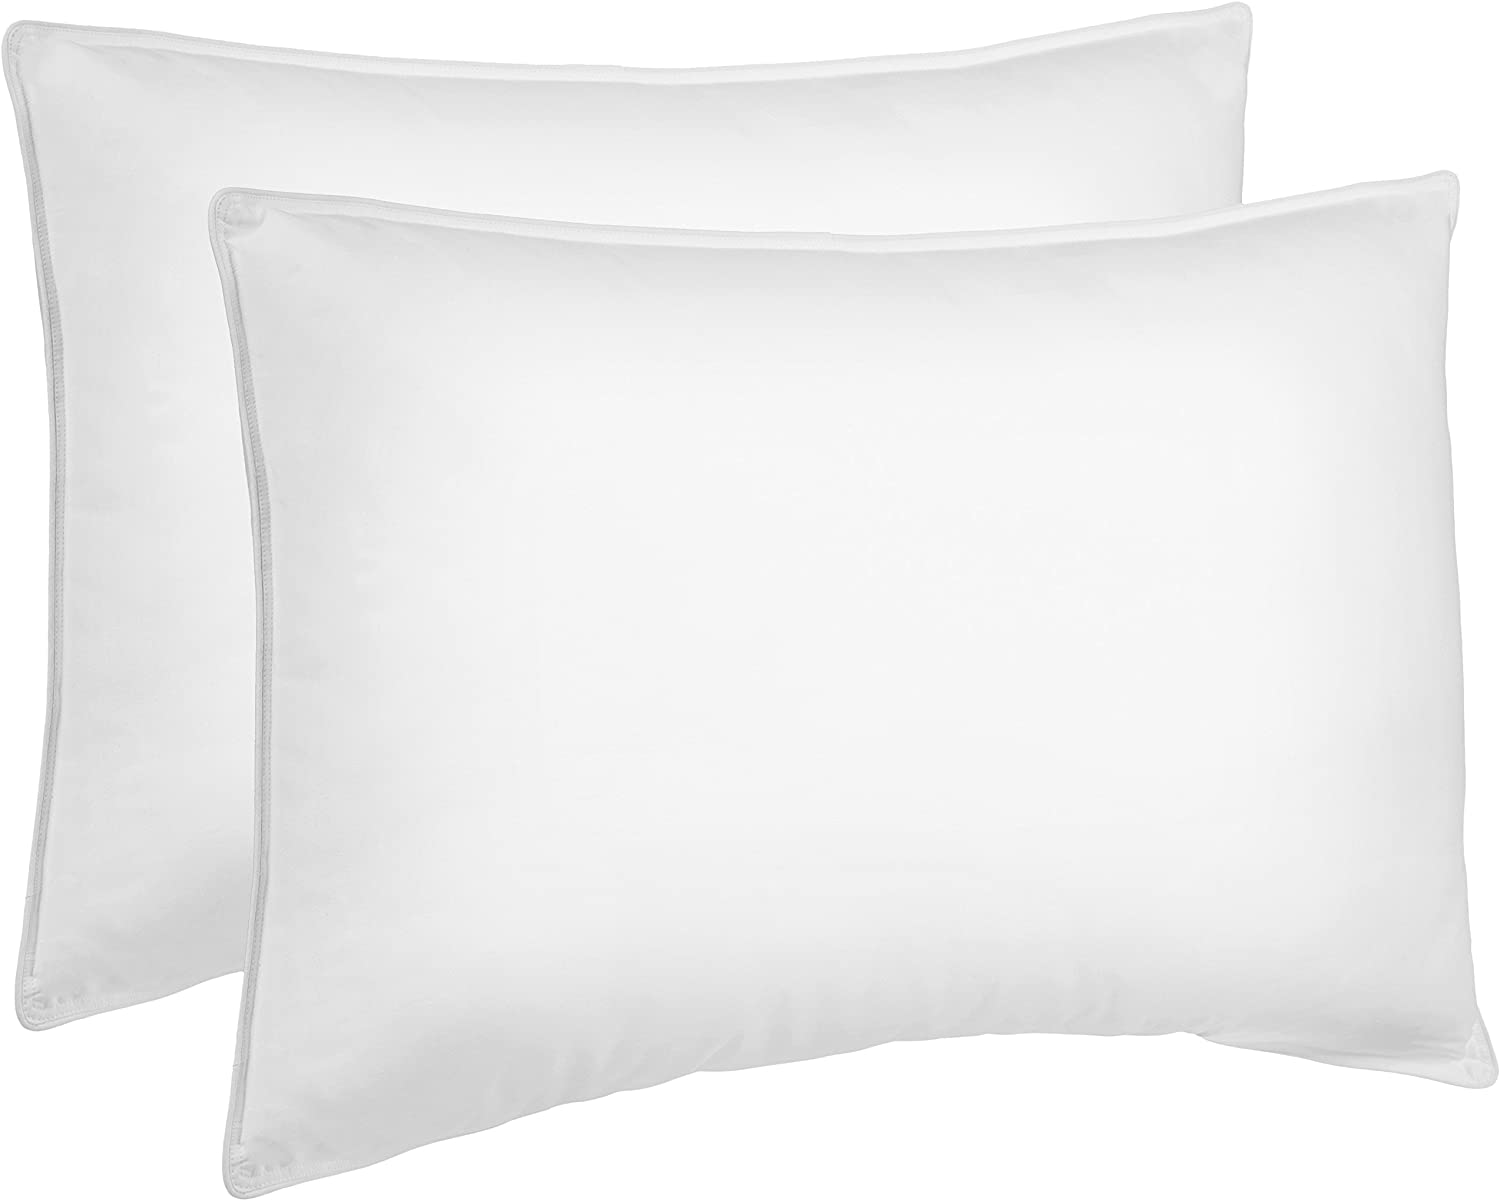 Amazon Basics Down Alternative Bed Pillows for Back Sleepers